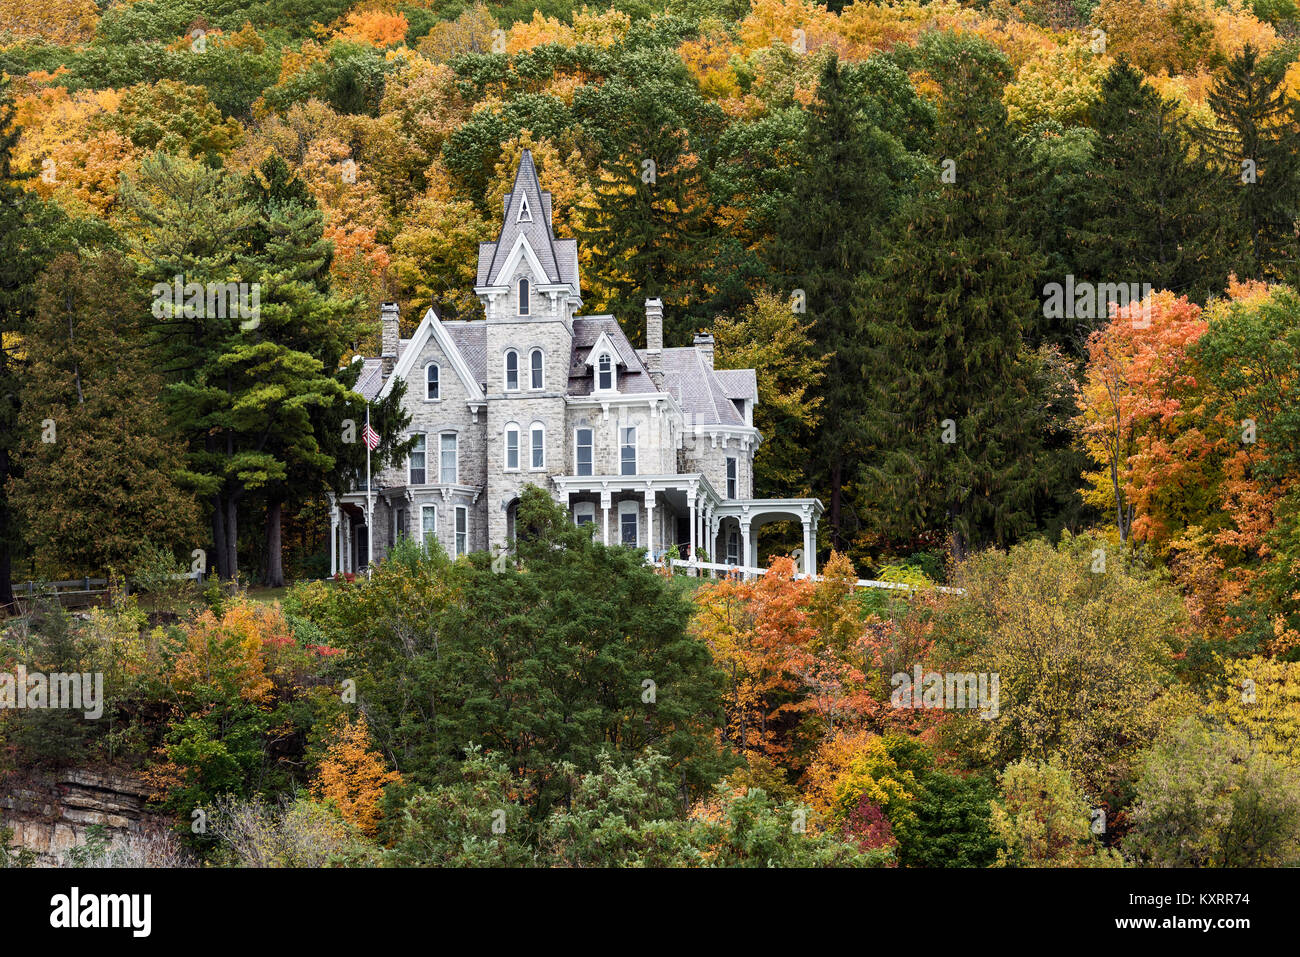 Skene Manor, a Victorian Gothic-style mansion in Whitehall, New York, USA. - Stock Image